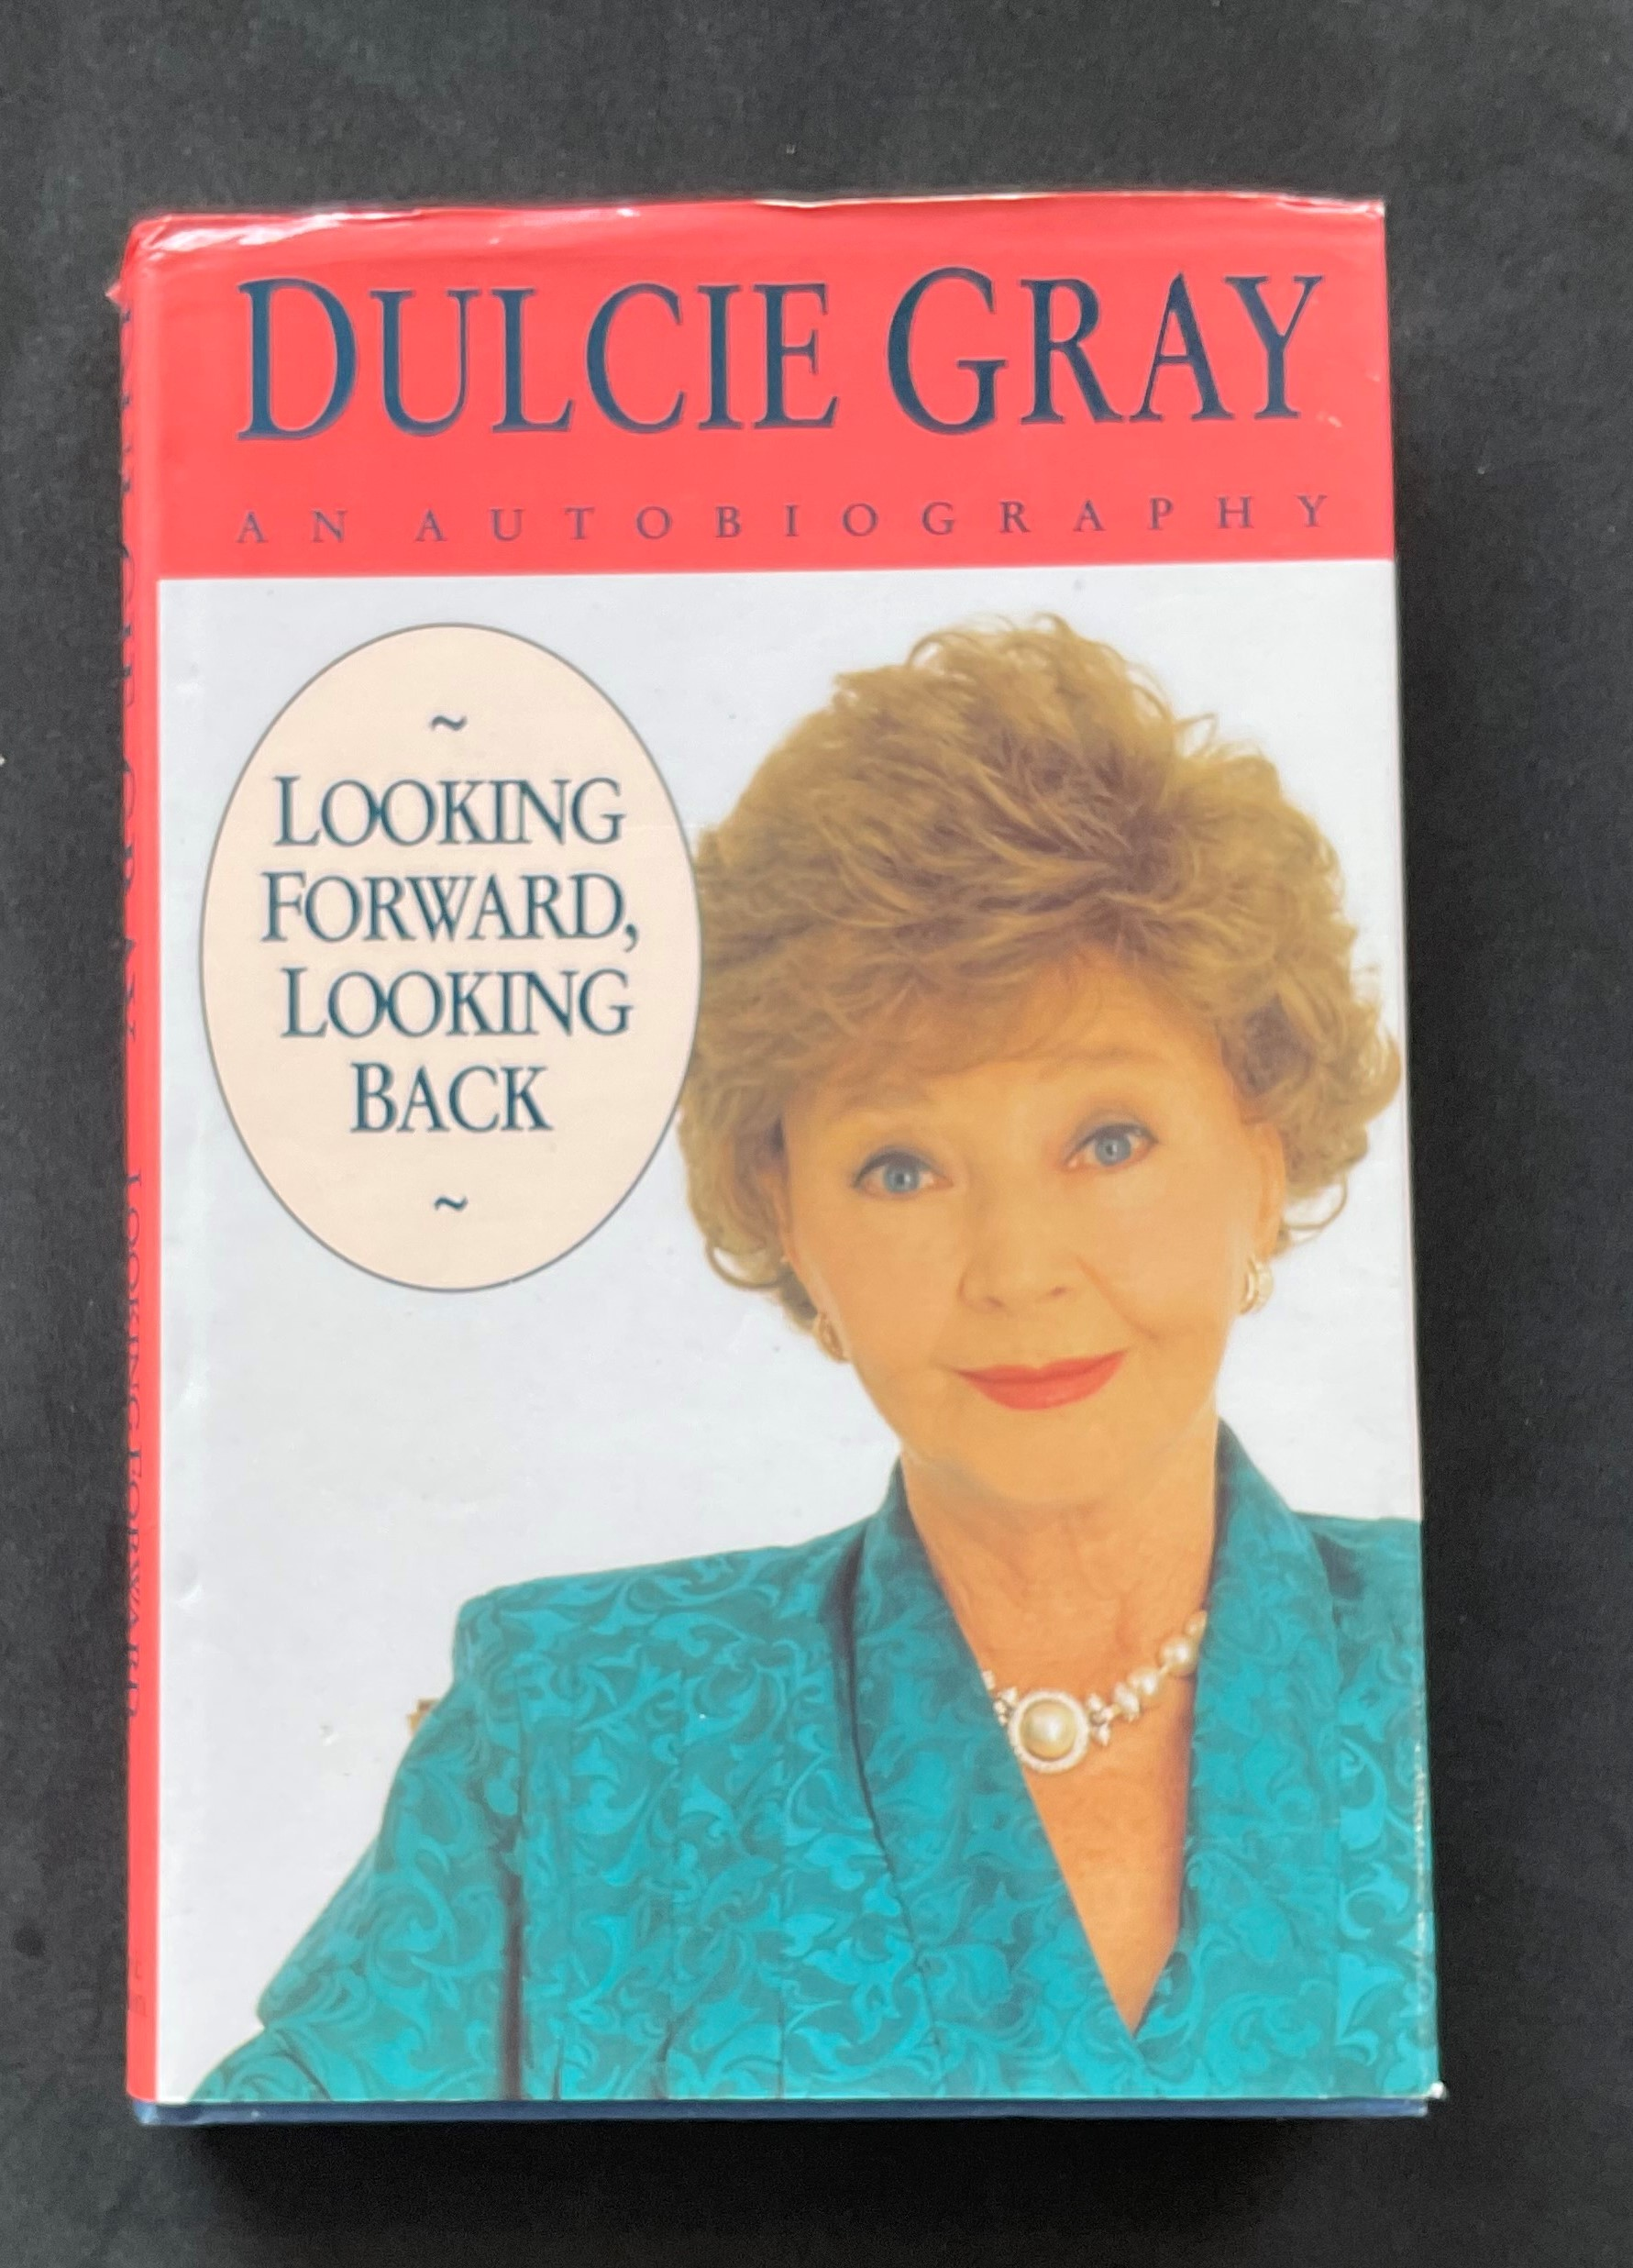 Actress Dulcie Grays autobiography Looking Forward, Looking Back, signed and dedicated to Don.